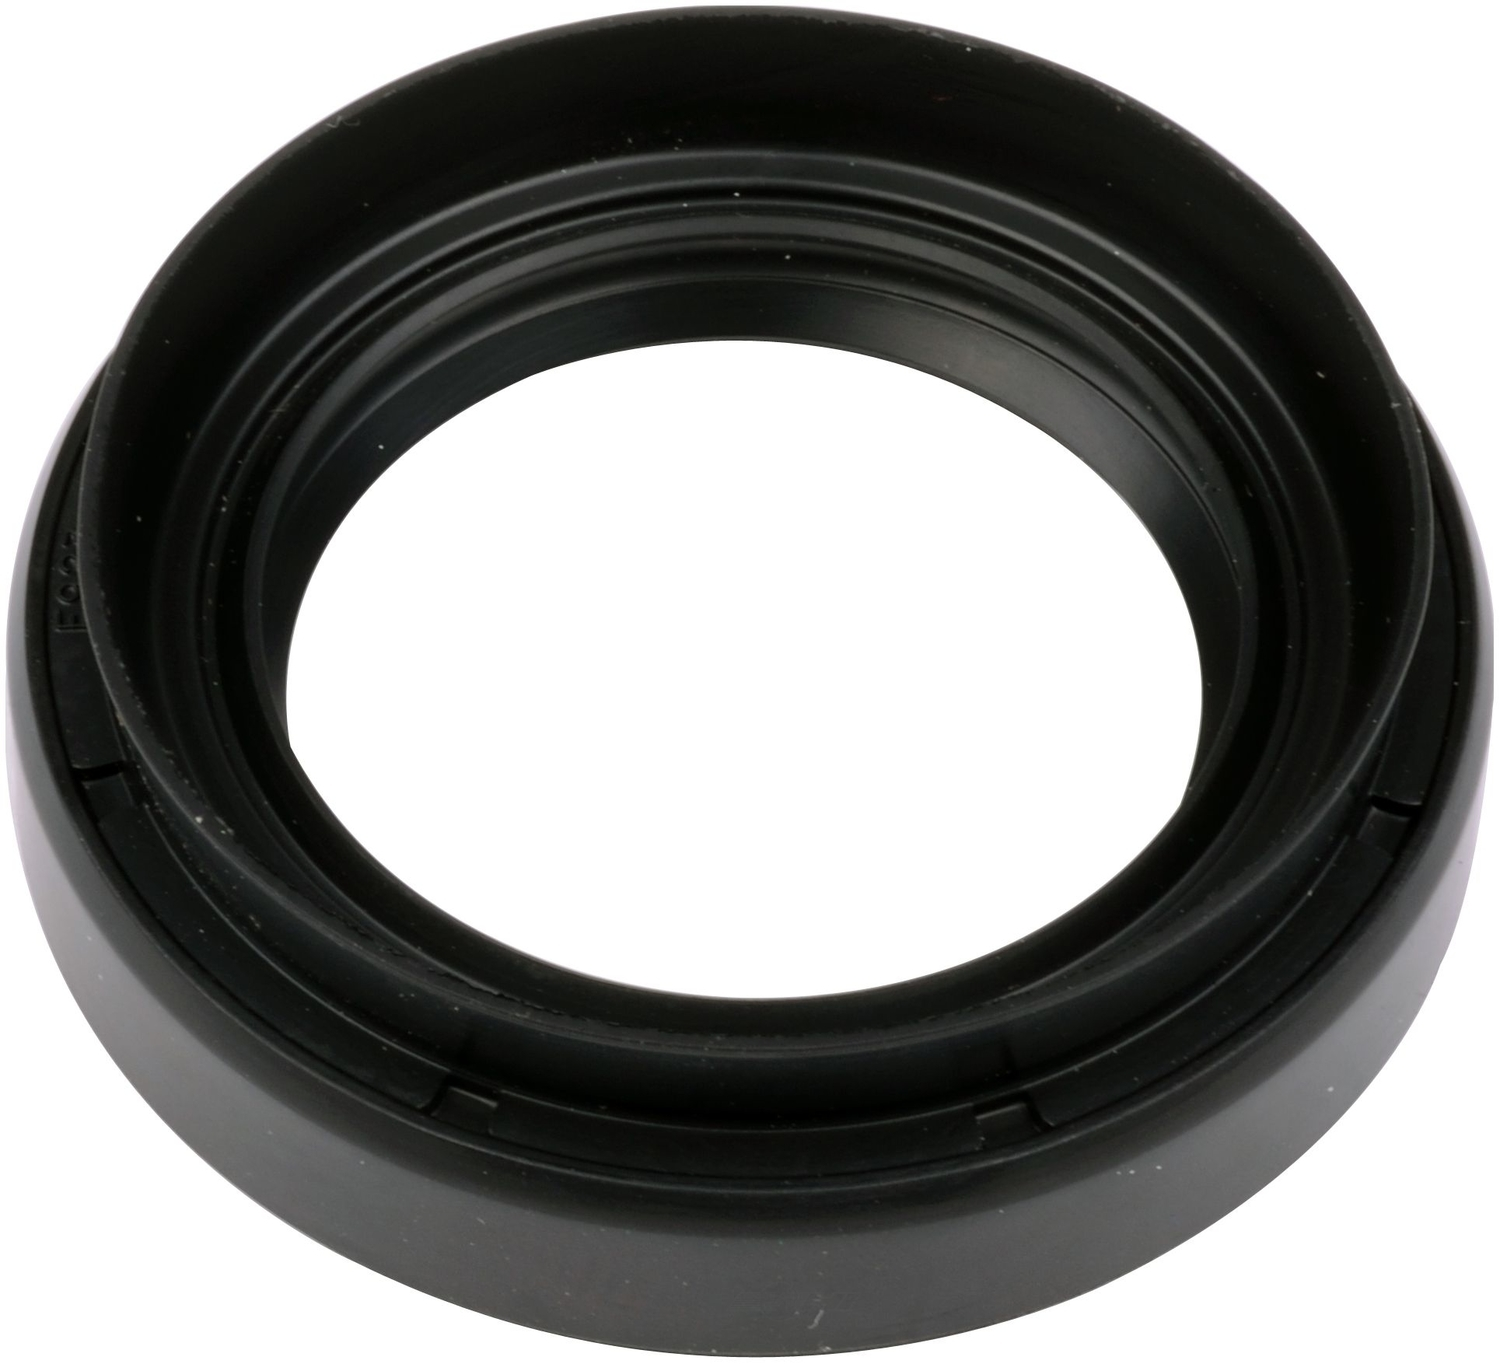 SKF (CHICAGO RAWHIDE) - Manual Trans Output Shaft Seal - SKF 15372